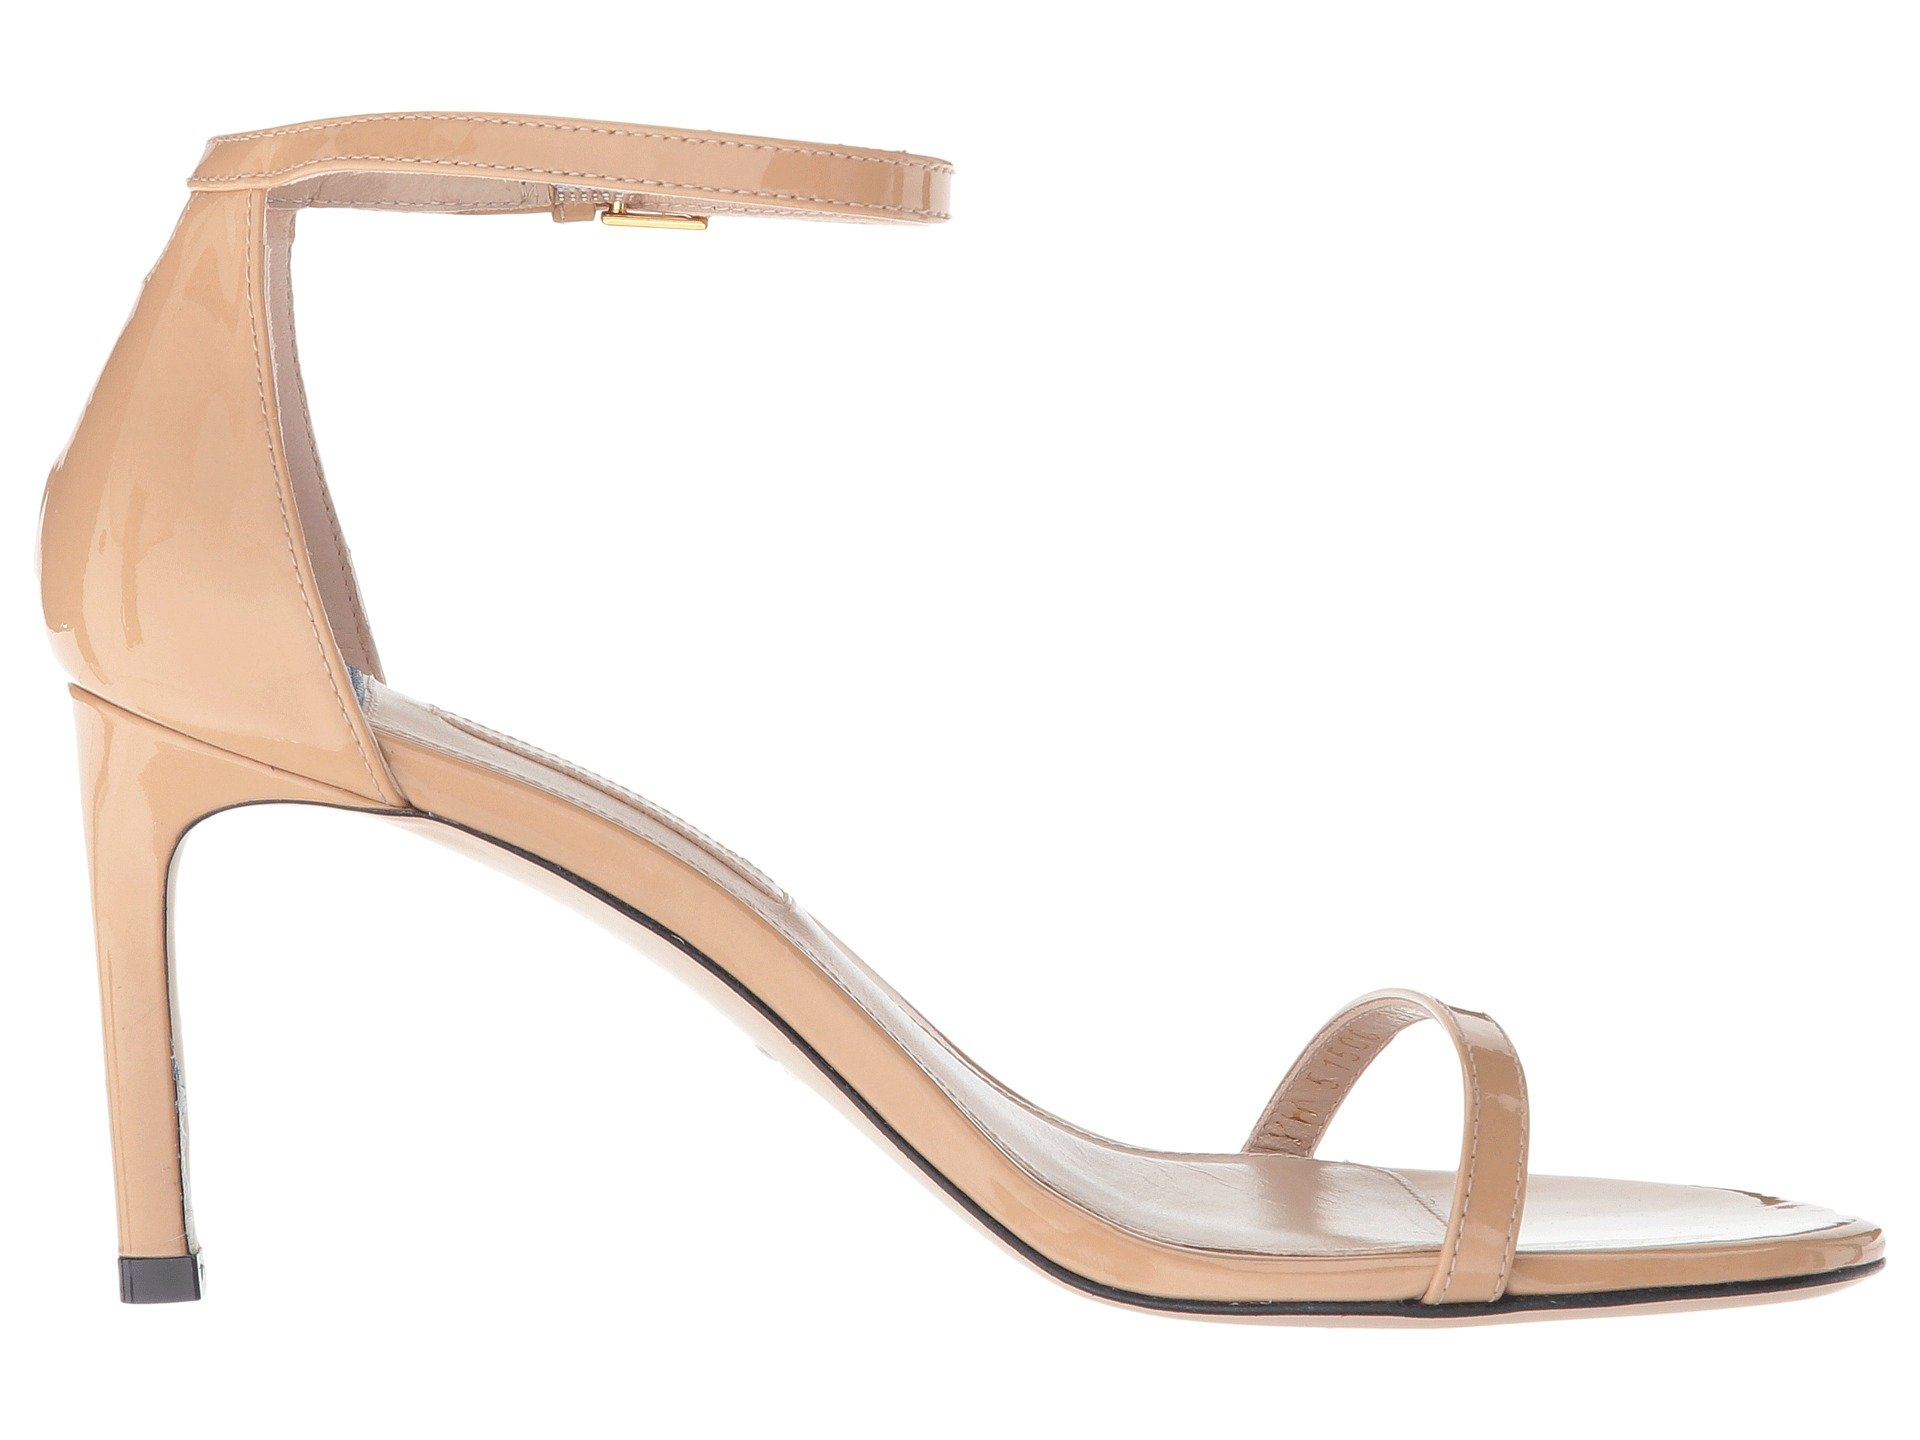 Adobe Nudist Cristal Stuart Traditional Weitzman 75 qnIwxxRSY